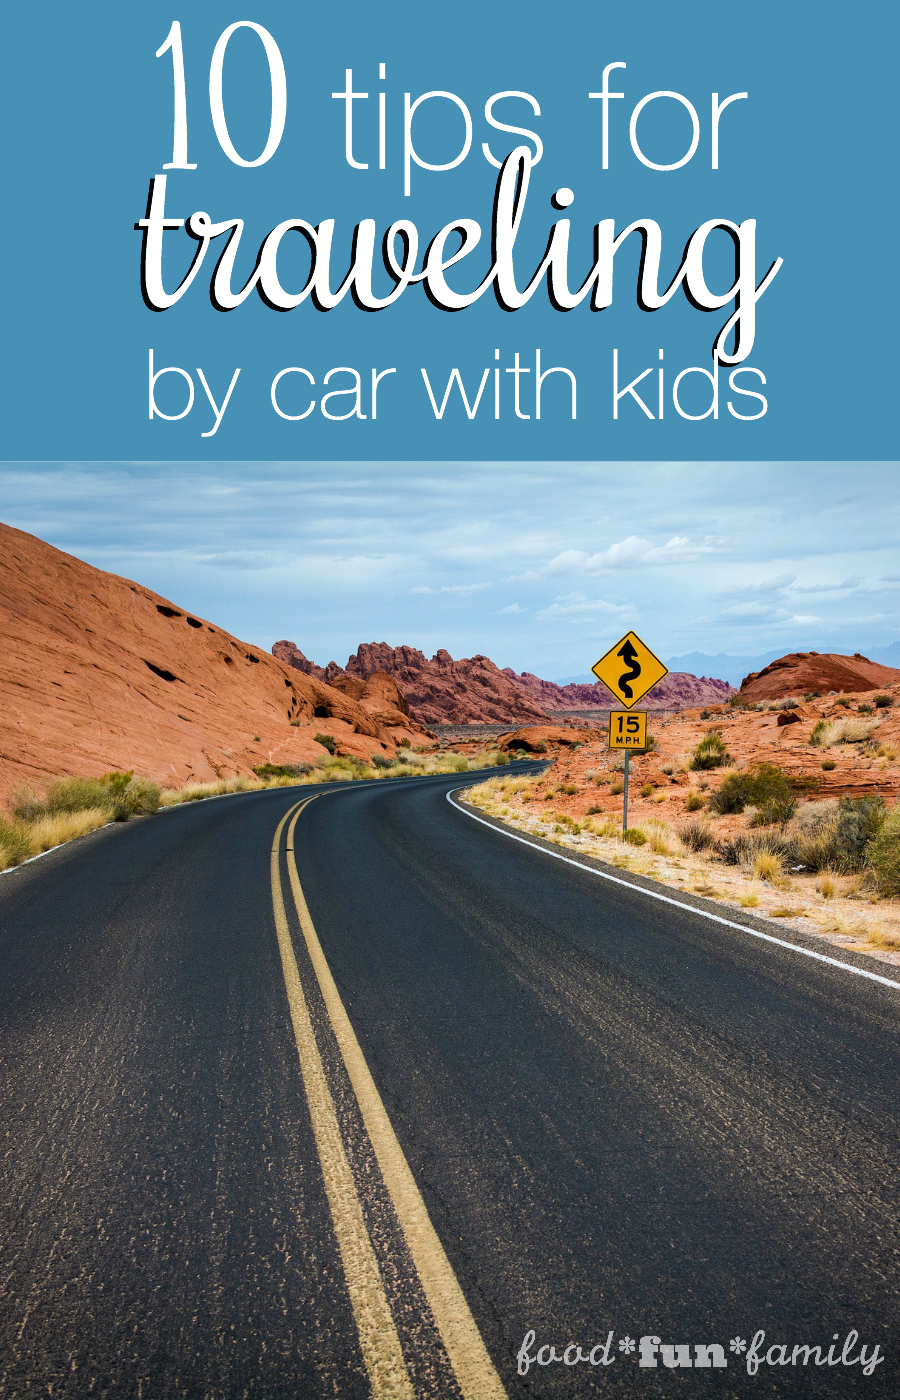 Planning a road trip with the family? Traveling by car is afrugal way to take a family vacation...but it's not always easy! Here are 10 tips for traveling by car with kids.